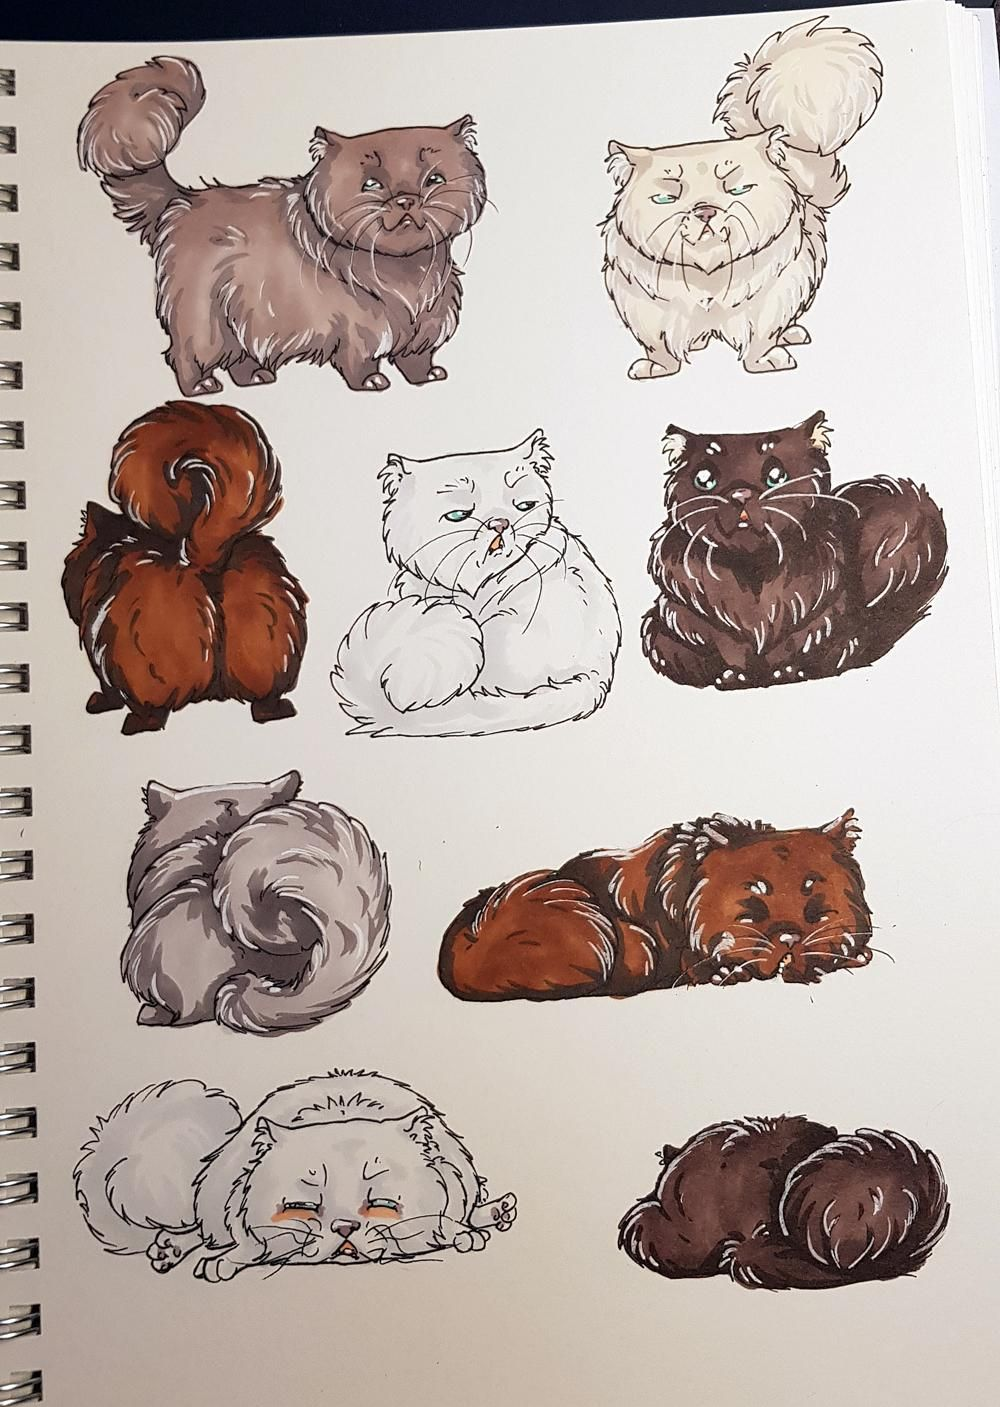 Sketchbook Cats - image 2 - student project